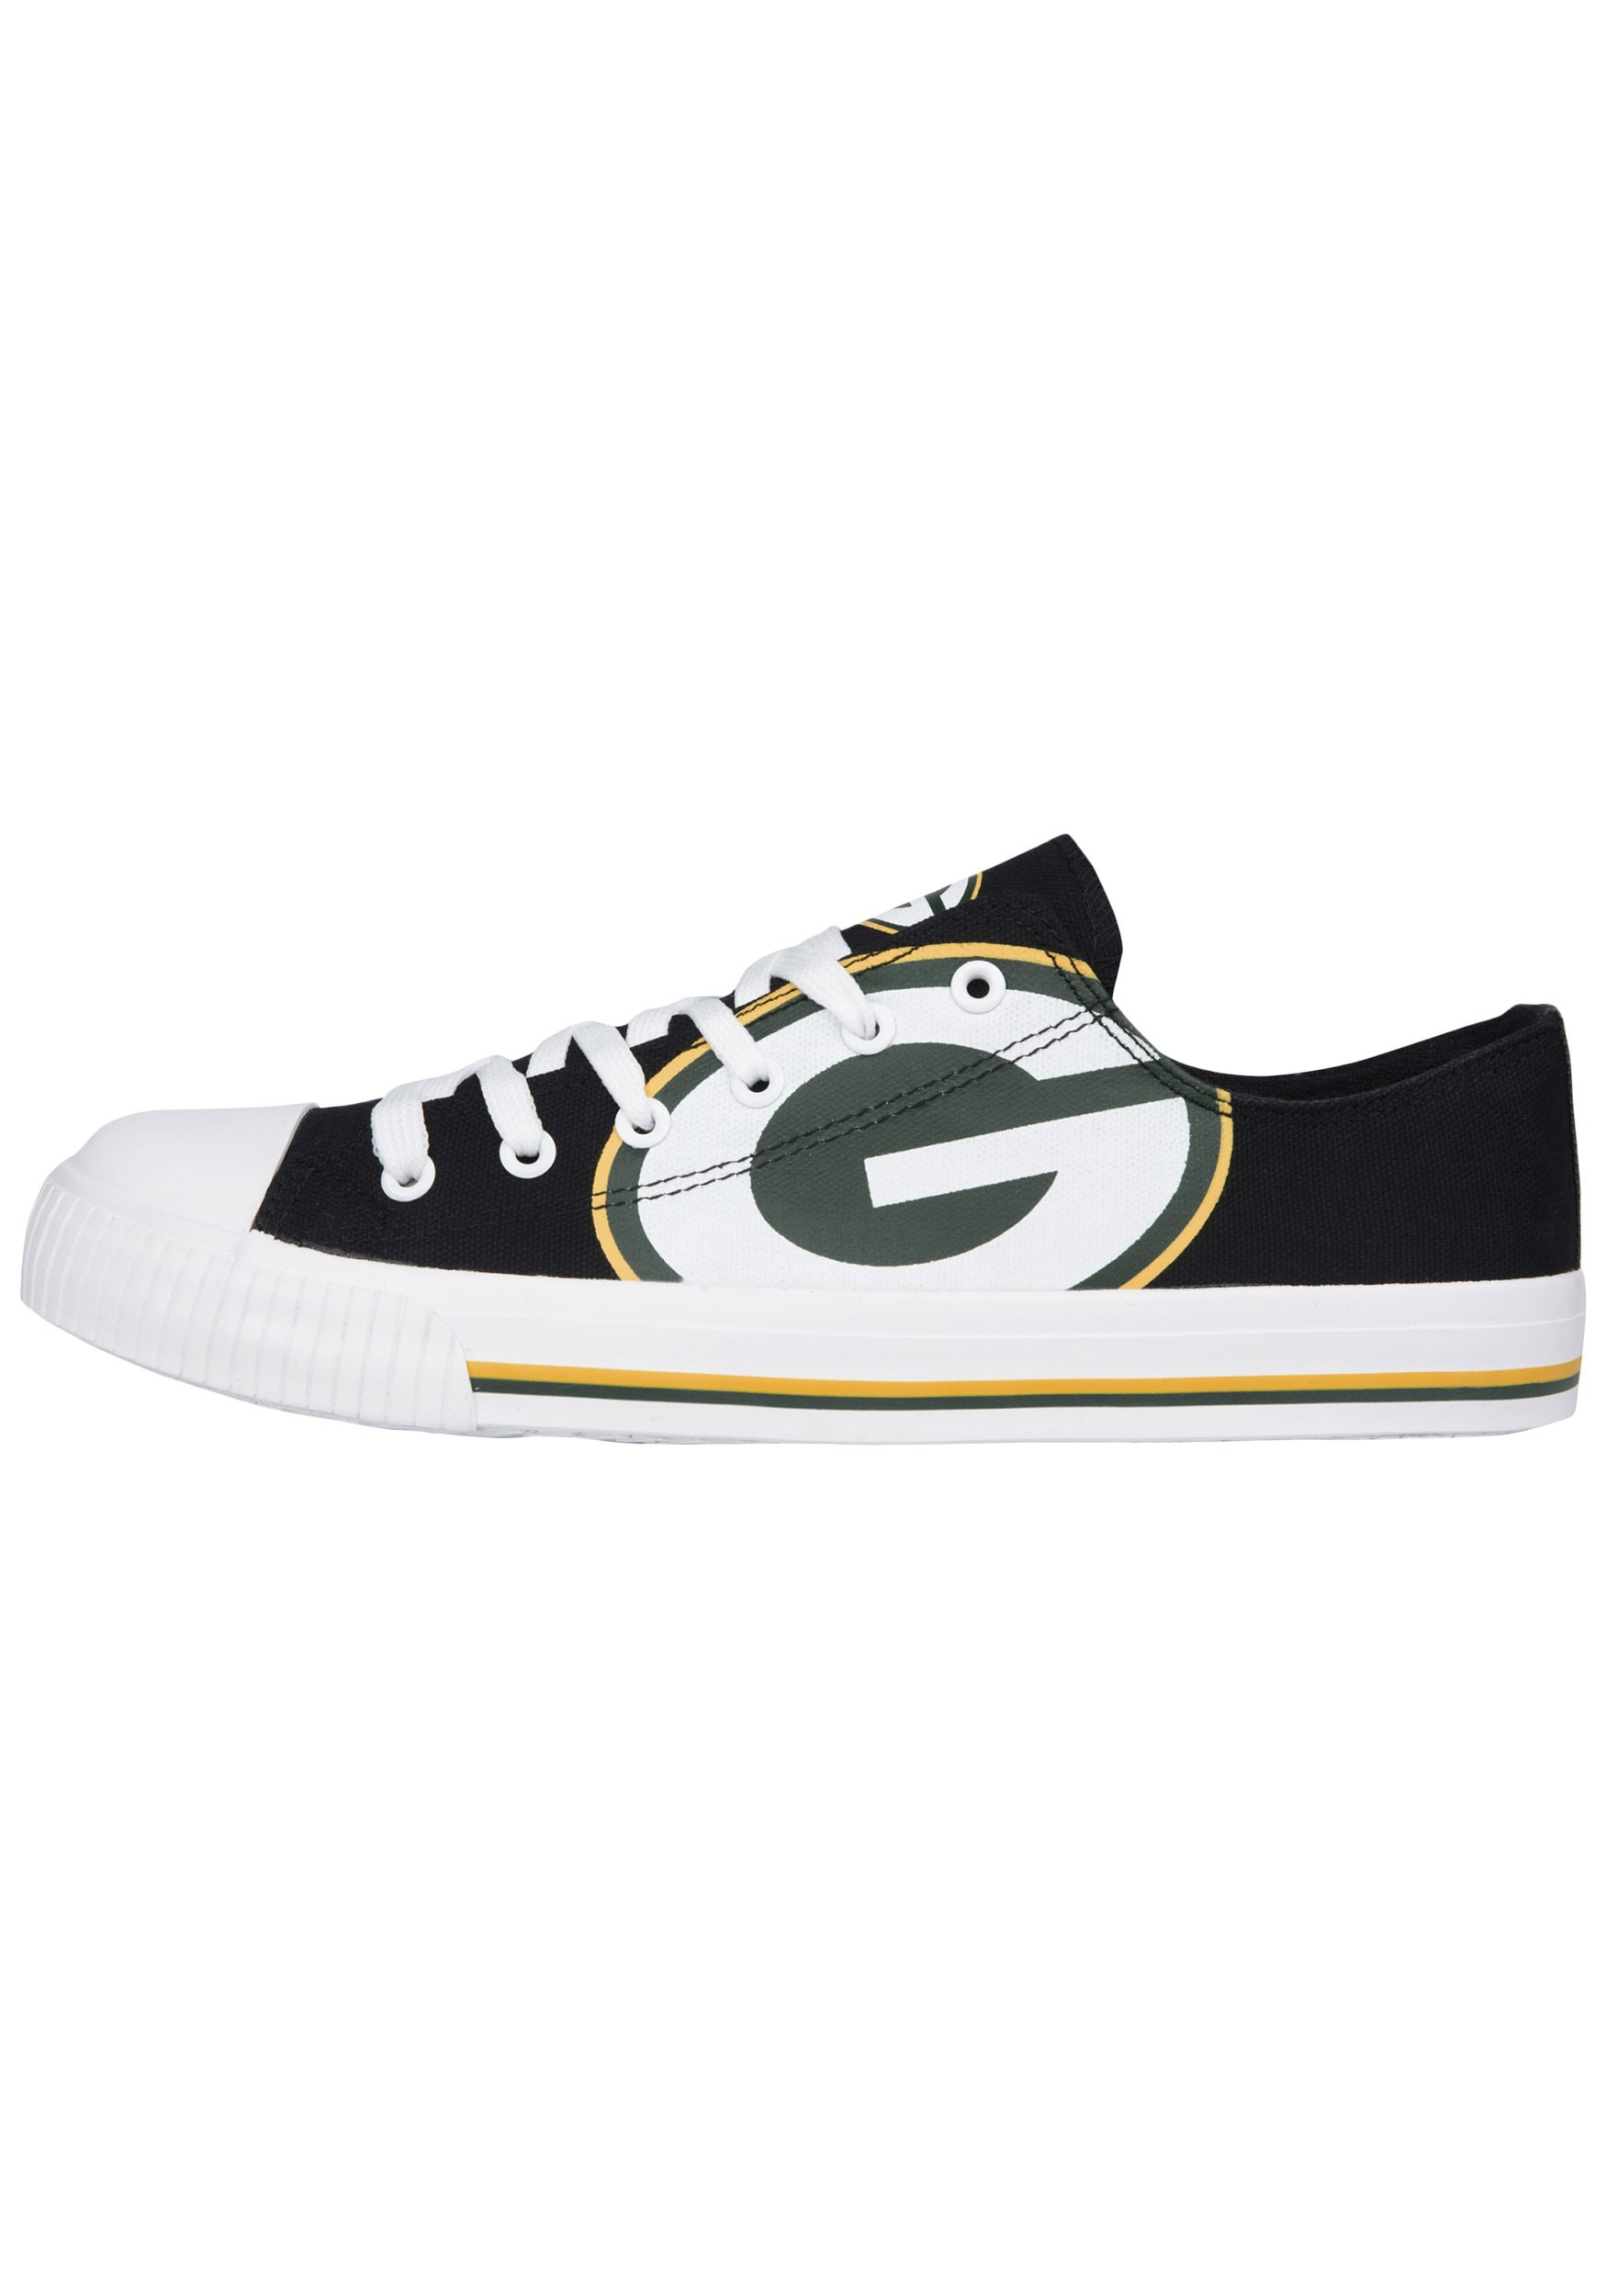 Green Bay Packers Low Top Canvas Youth Shoes